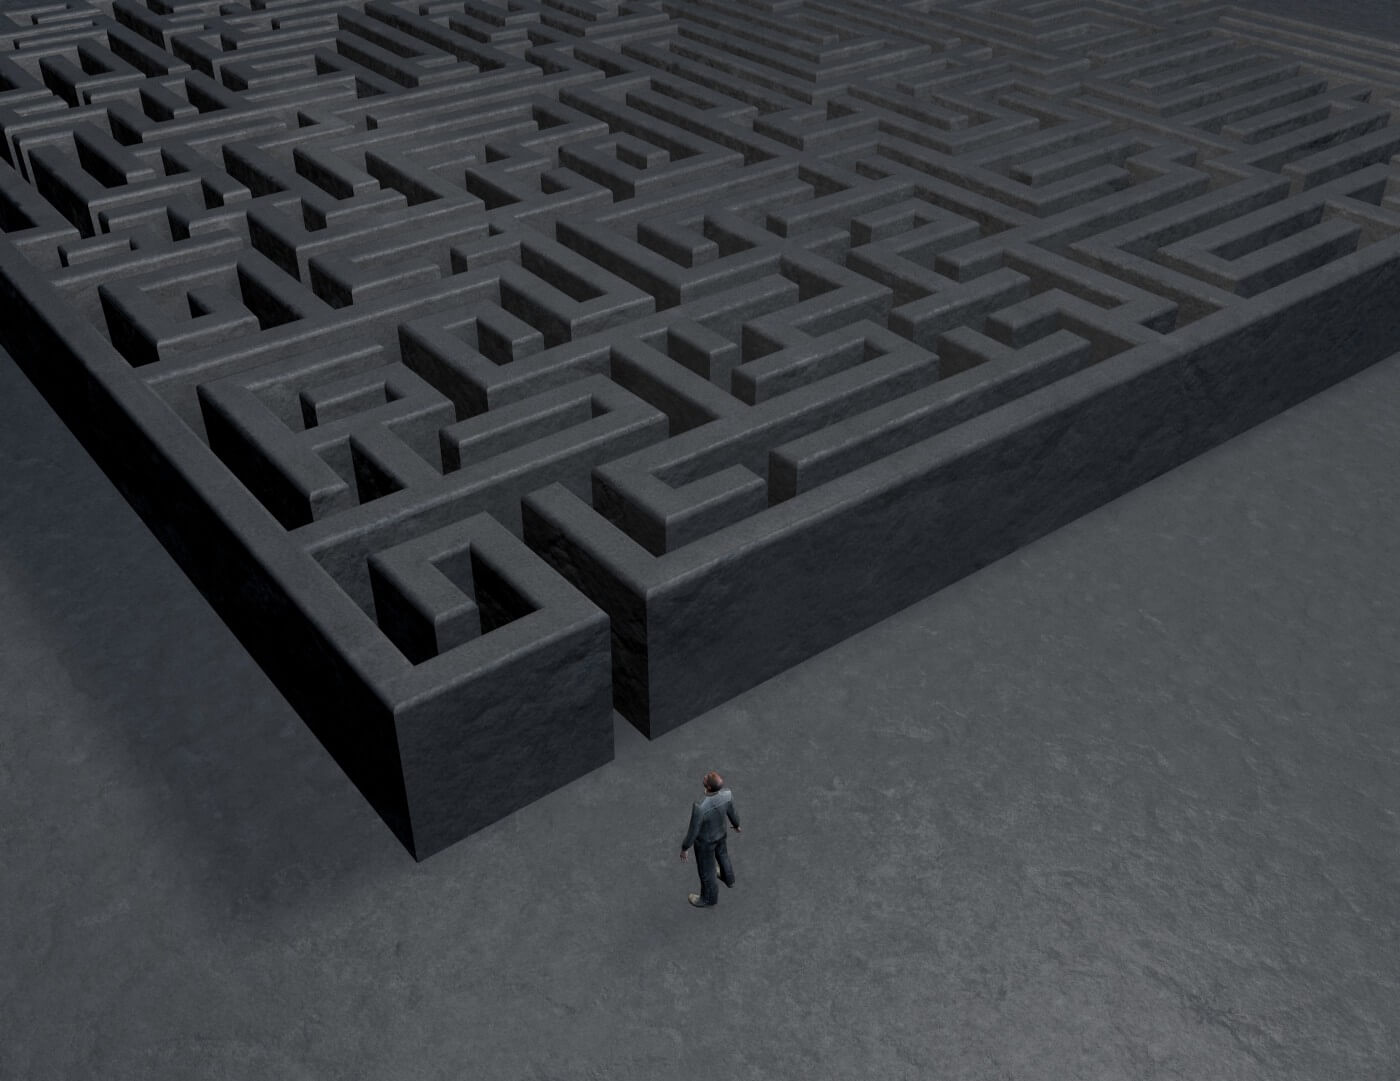 Dark convoluted maze with cartoon person standing outside of the entrance